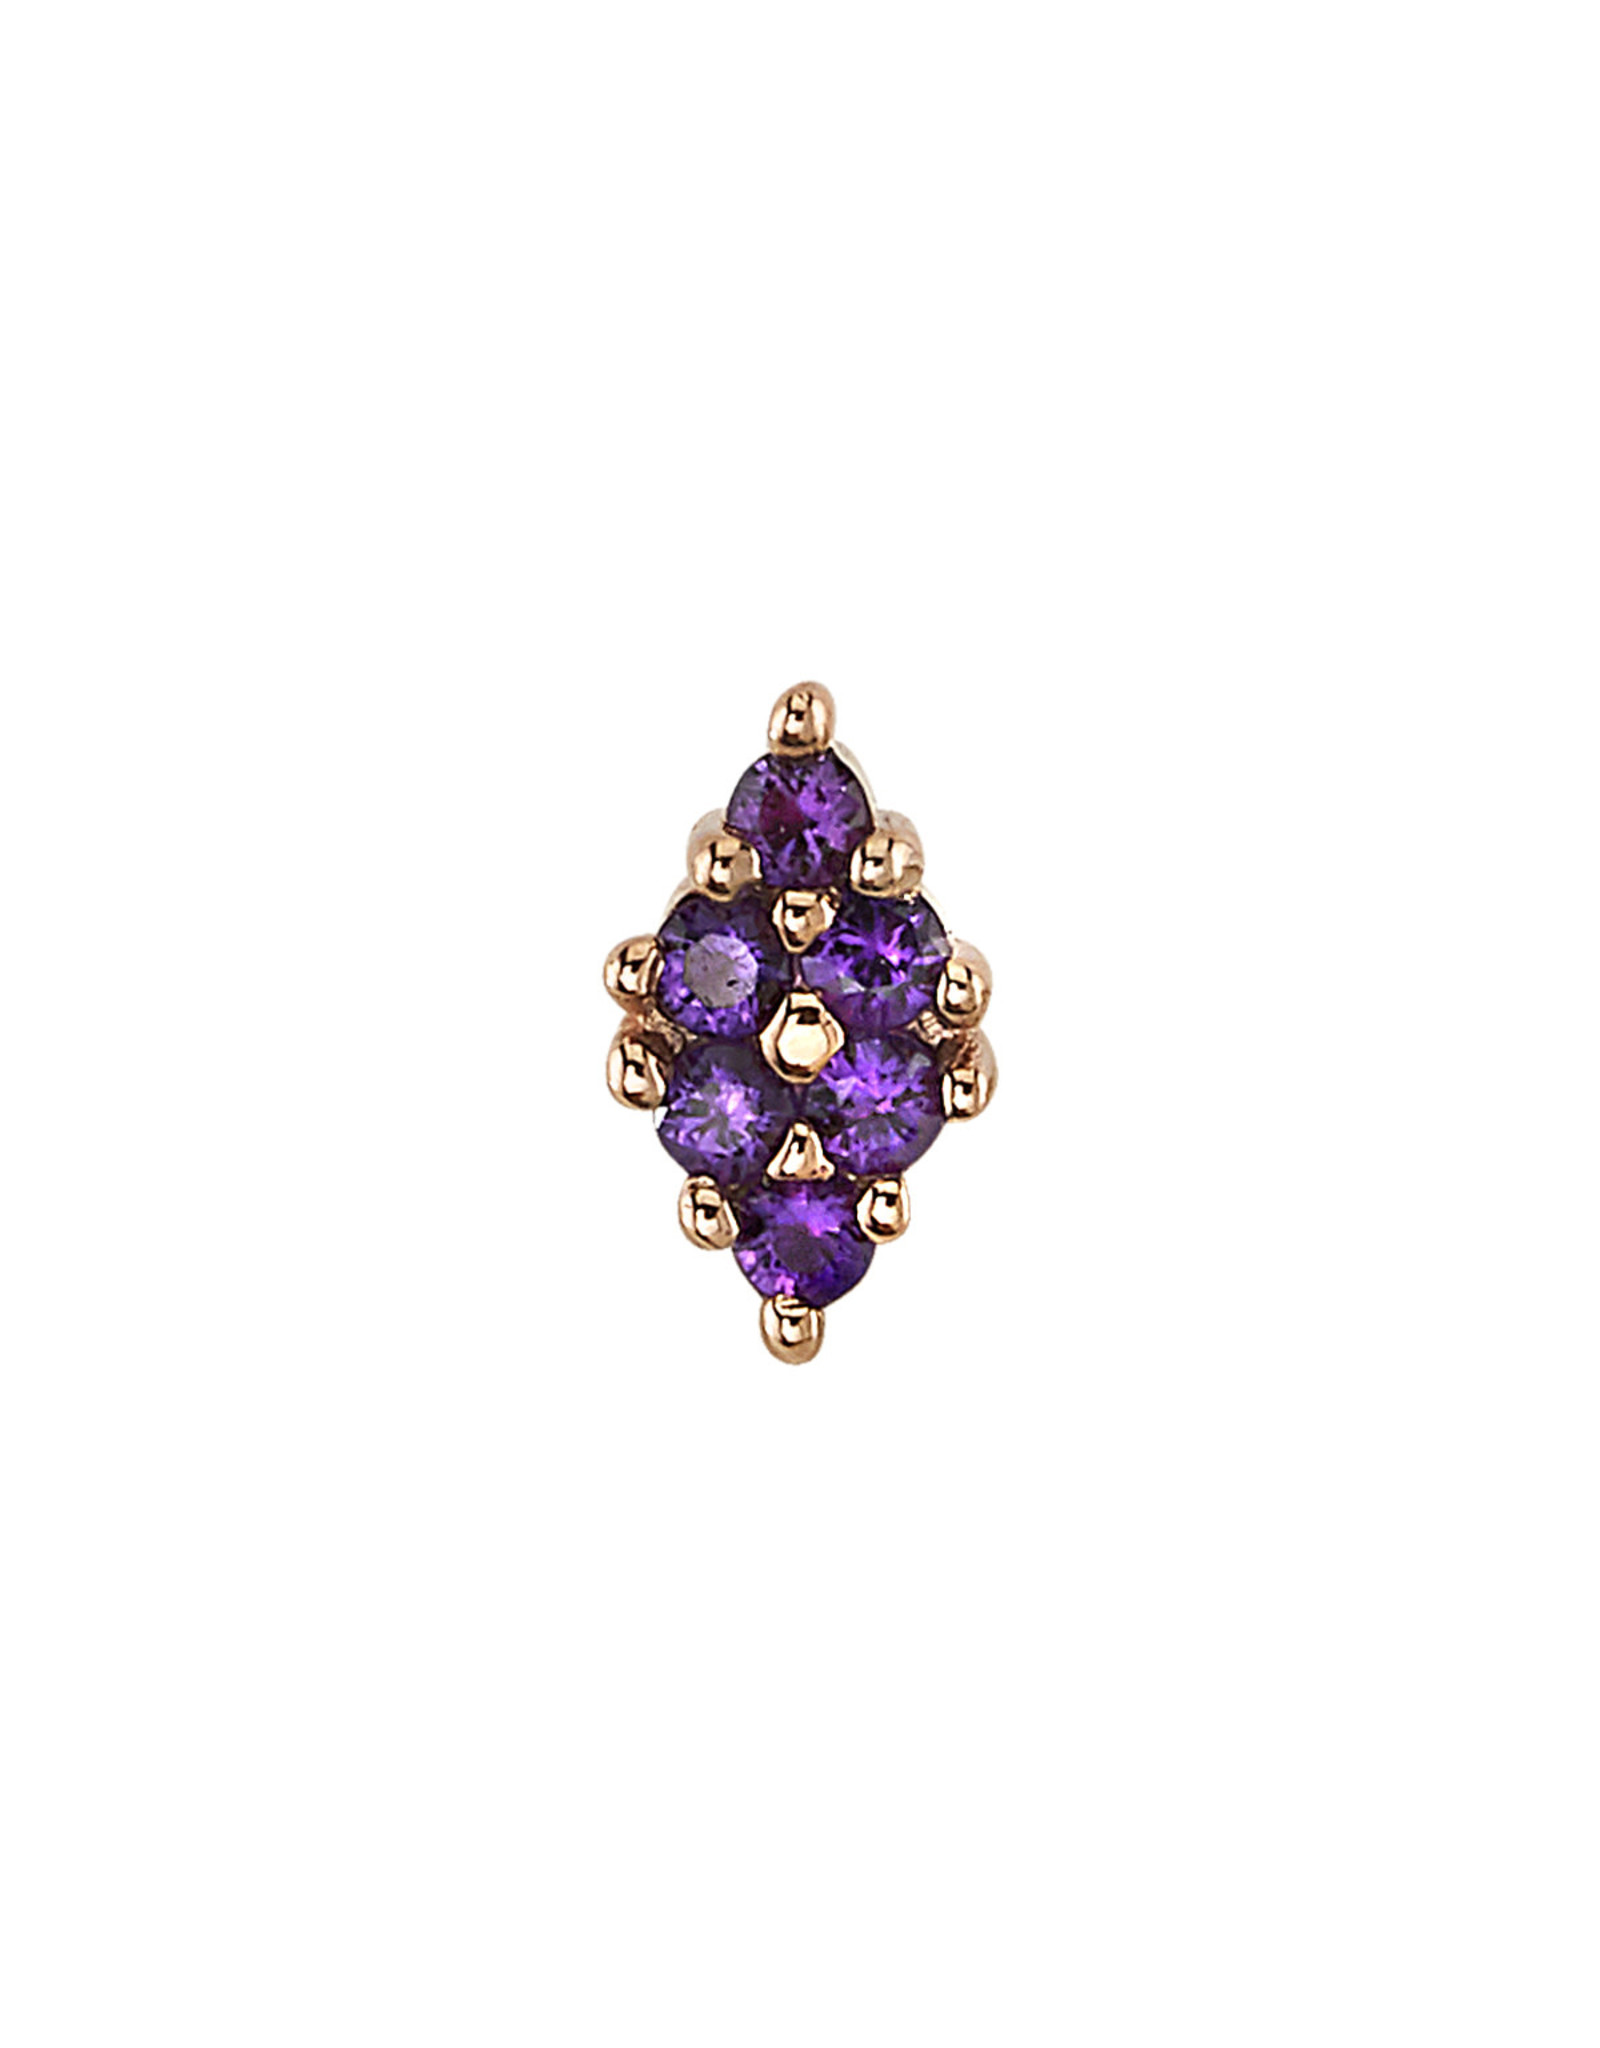 """BVLA BVLA rose gold """"Oasis"""" press fit end with 6x 1.0 amethyst"""